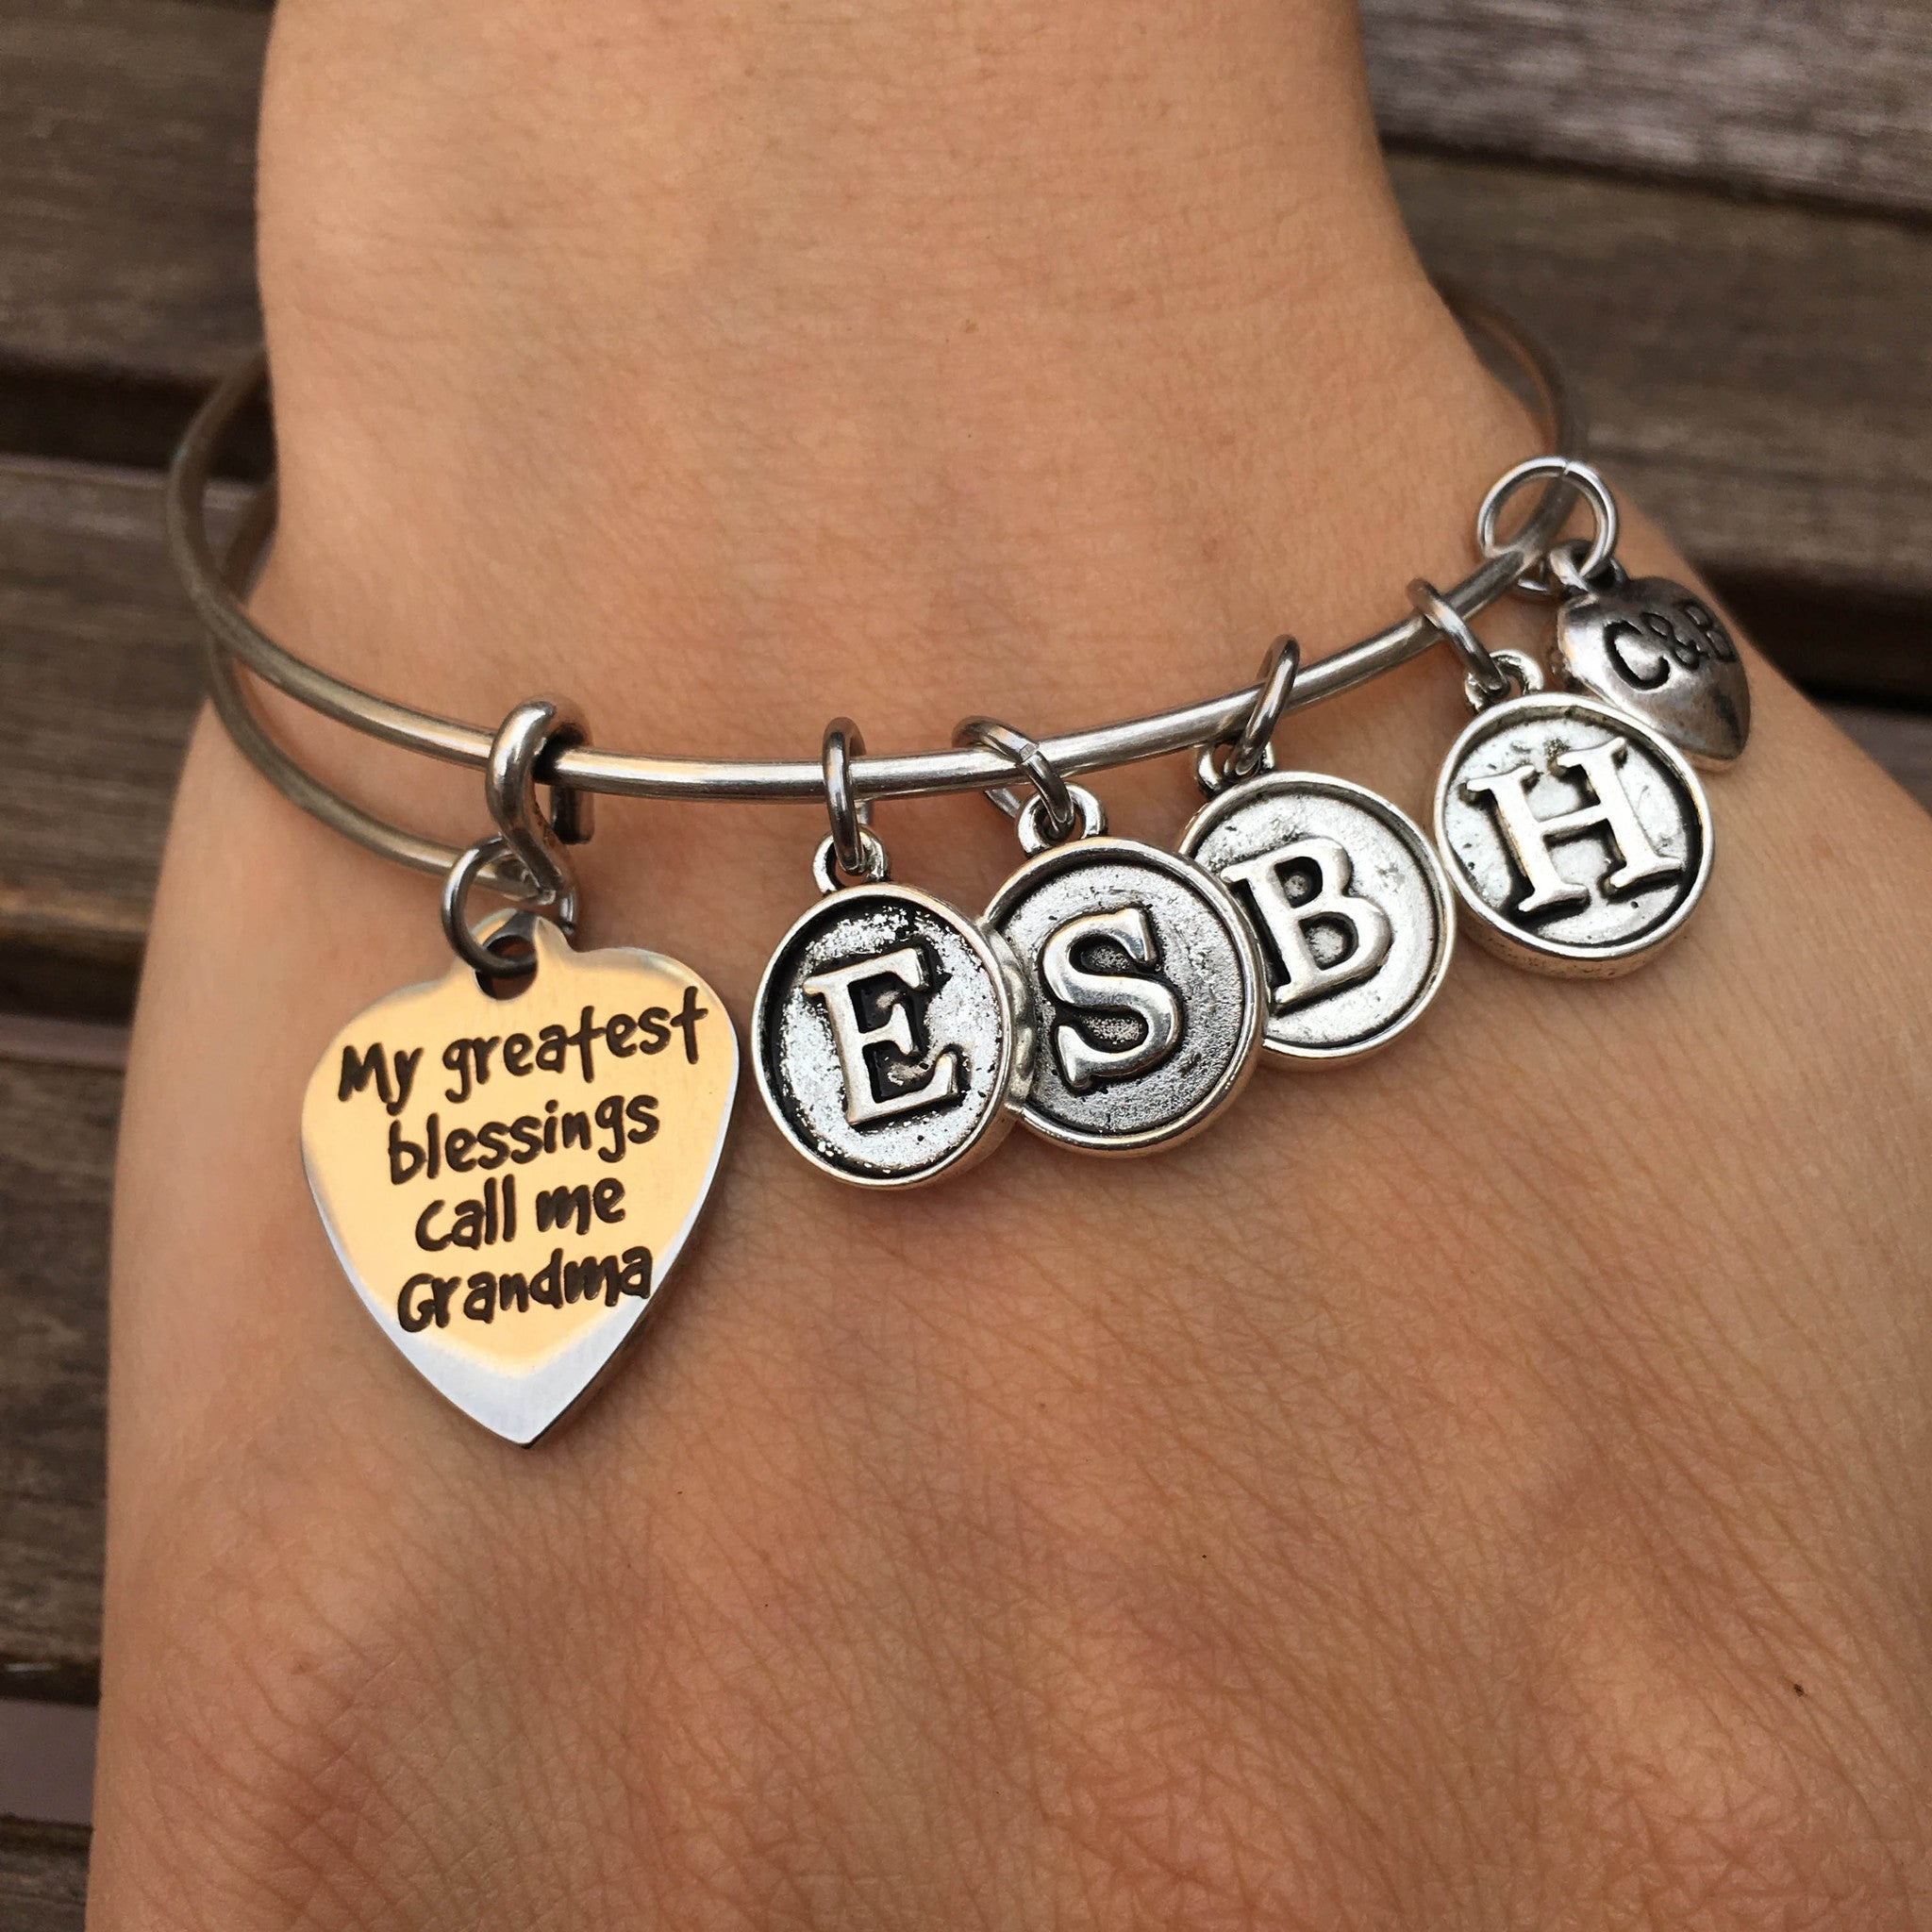 charm softball bracelets buy handmade bracelet a custom bangle stacking designmejewelry adjustable bangles stack made by baseball